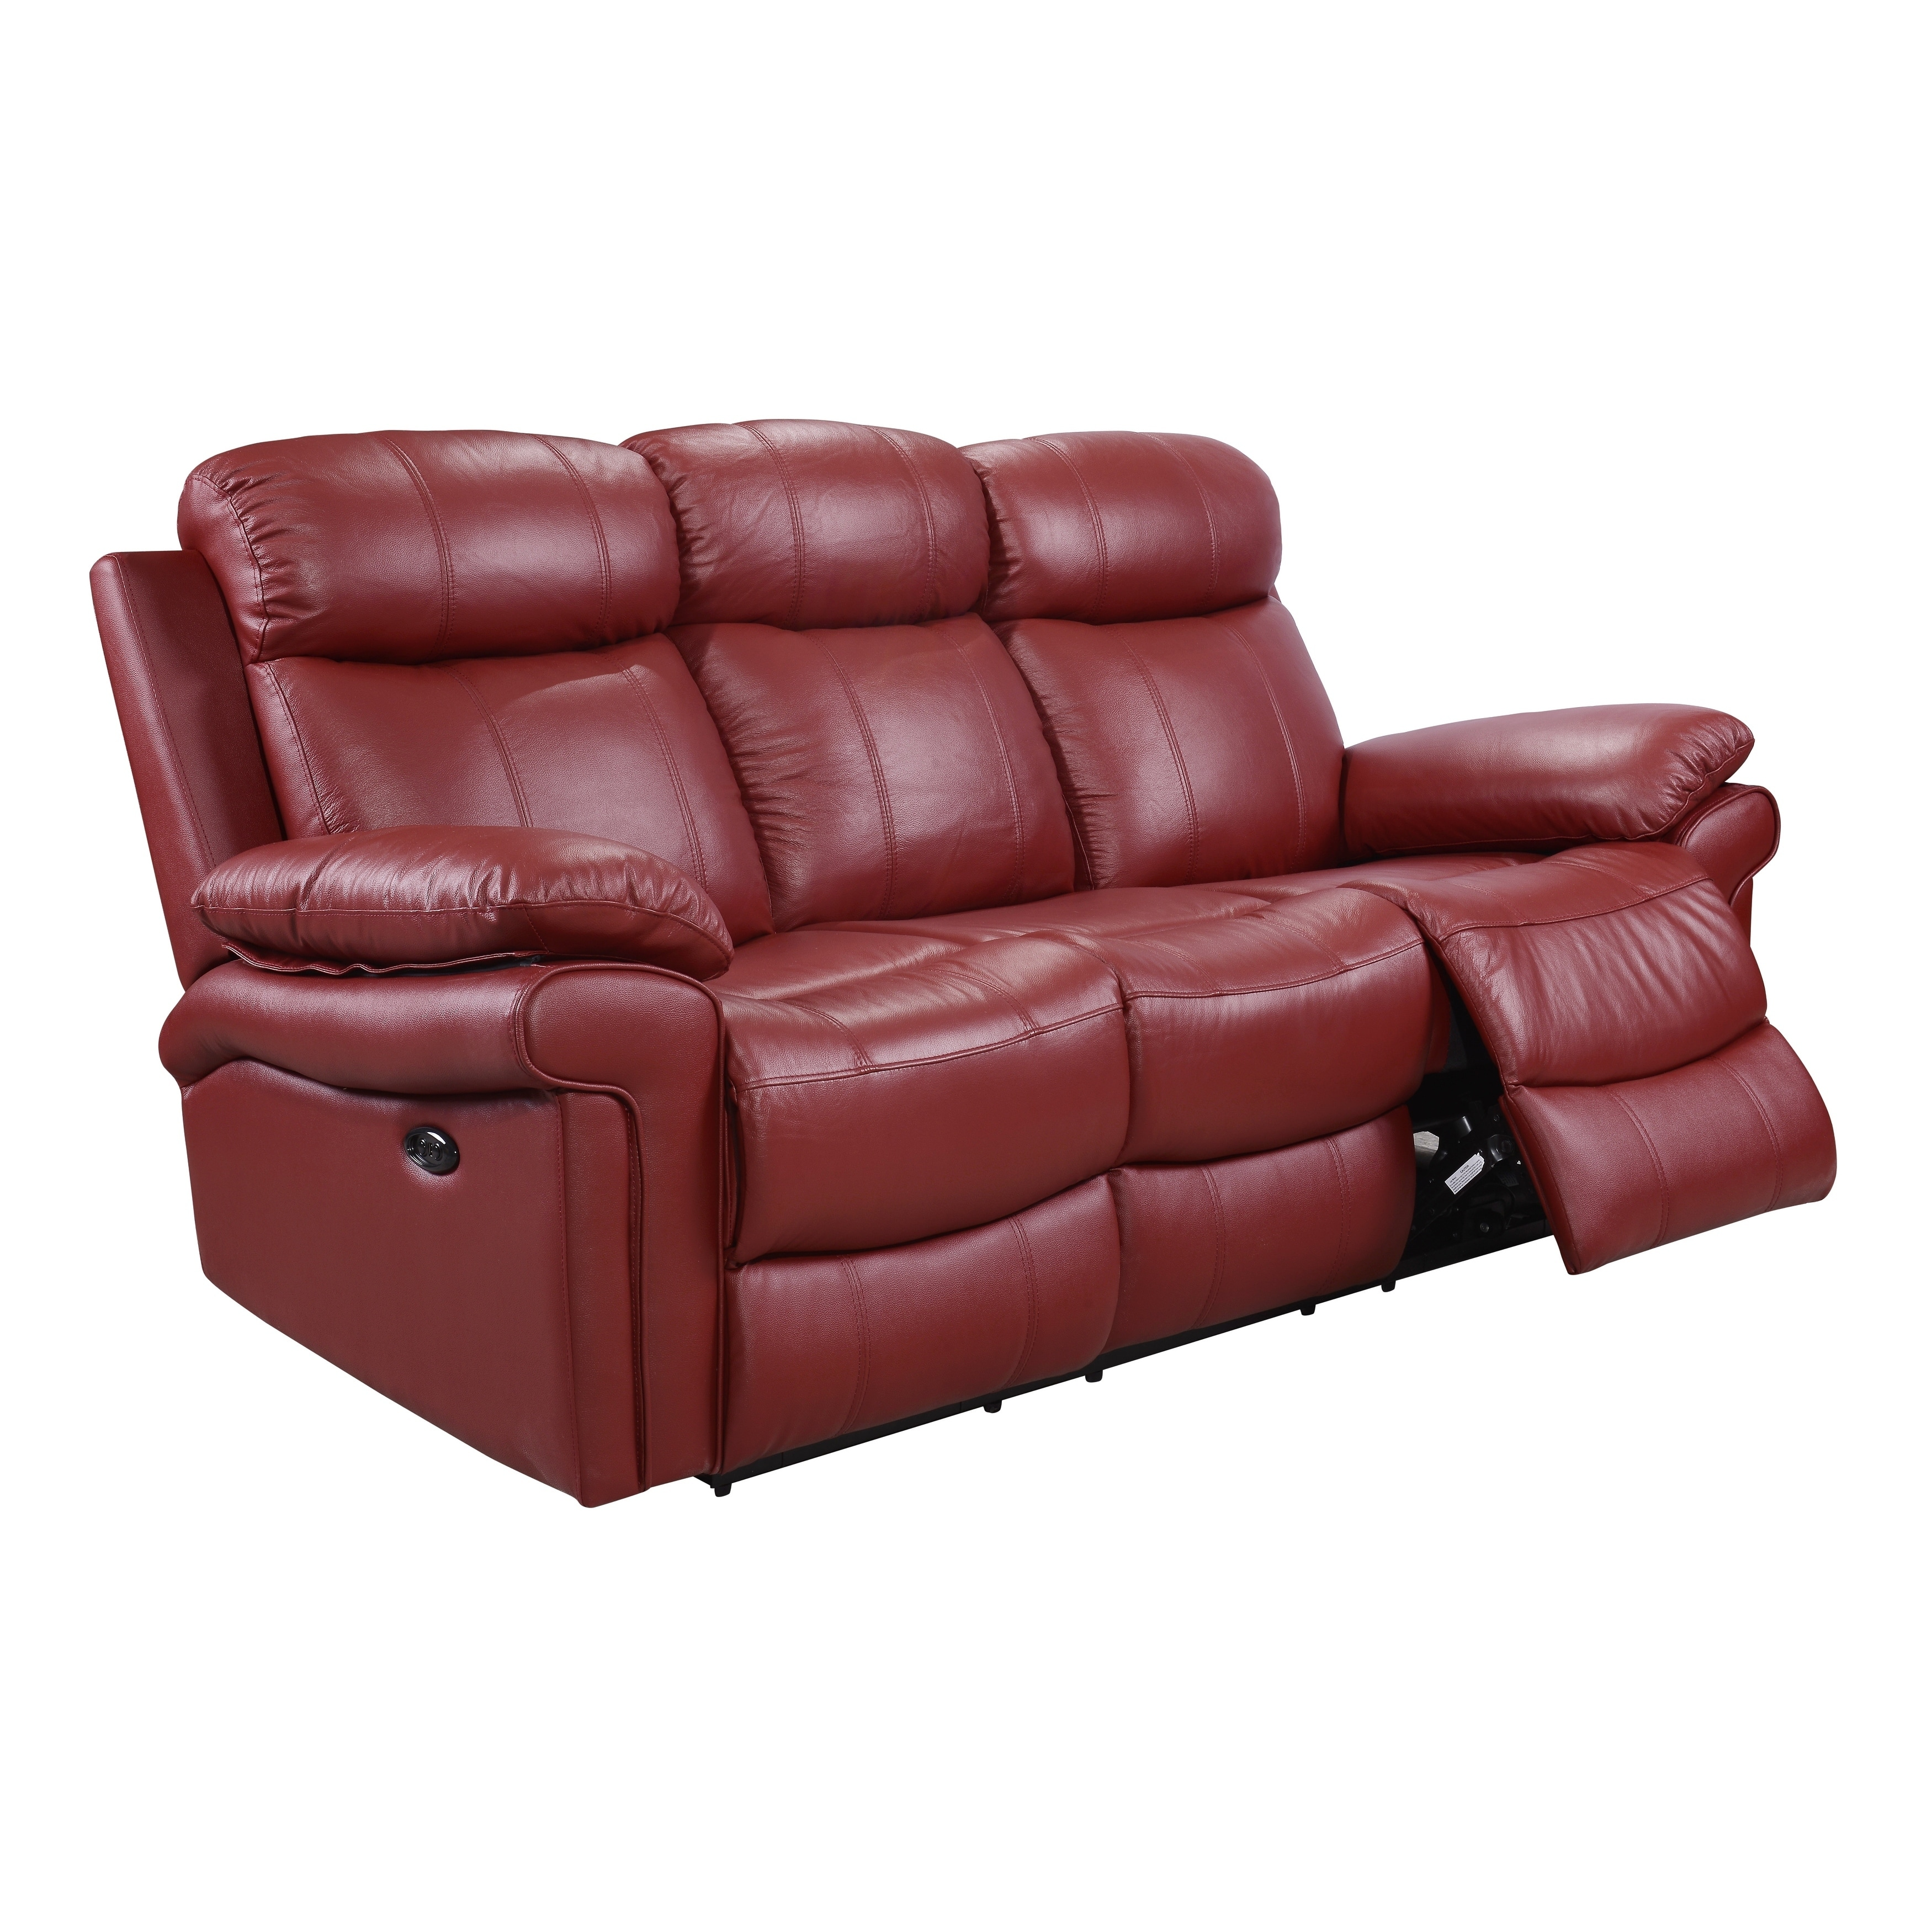 Shop Hudson Power Reclining Top Grain Leather Sofa (Brown/ Blue/ Red ...